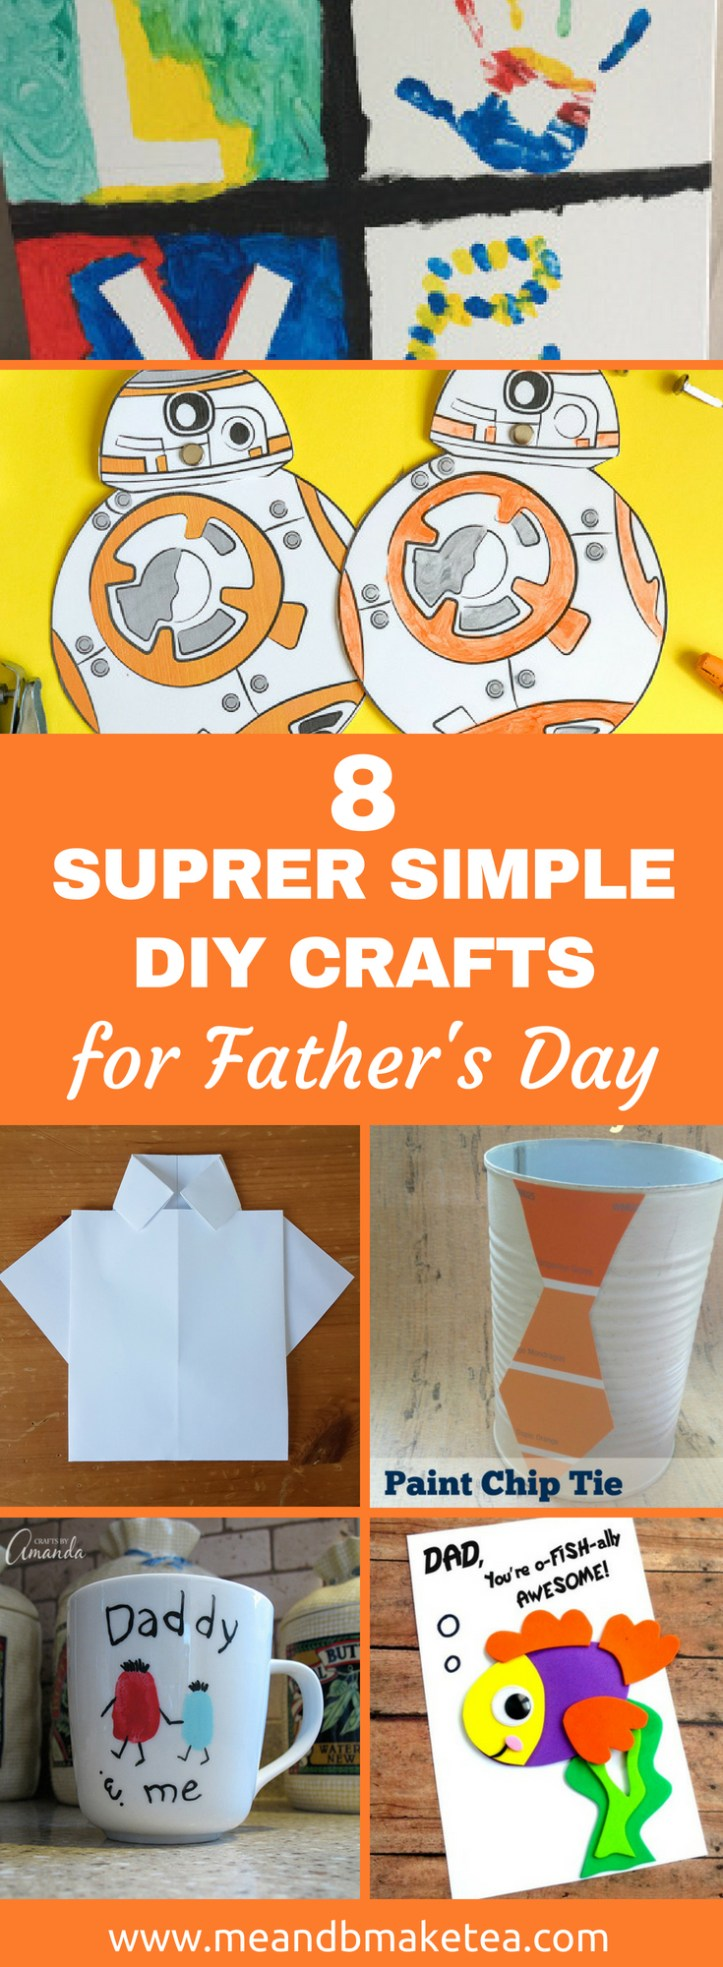 fathers day crafts that are easy to make with kids